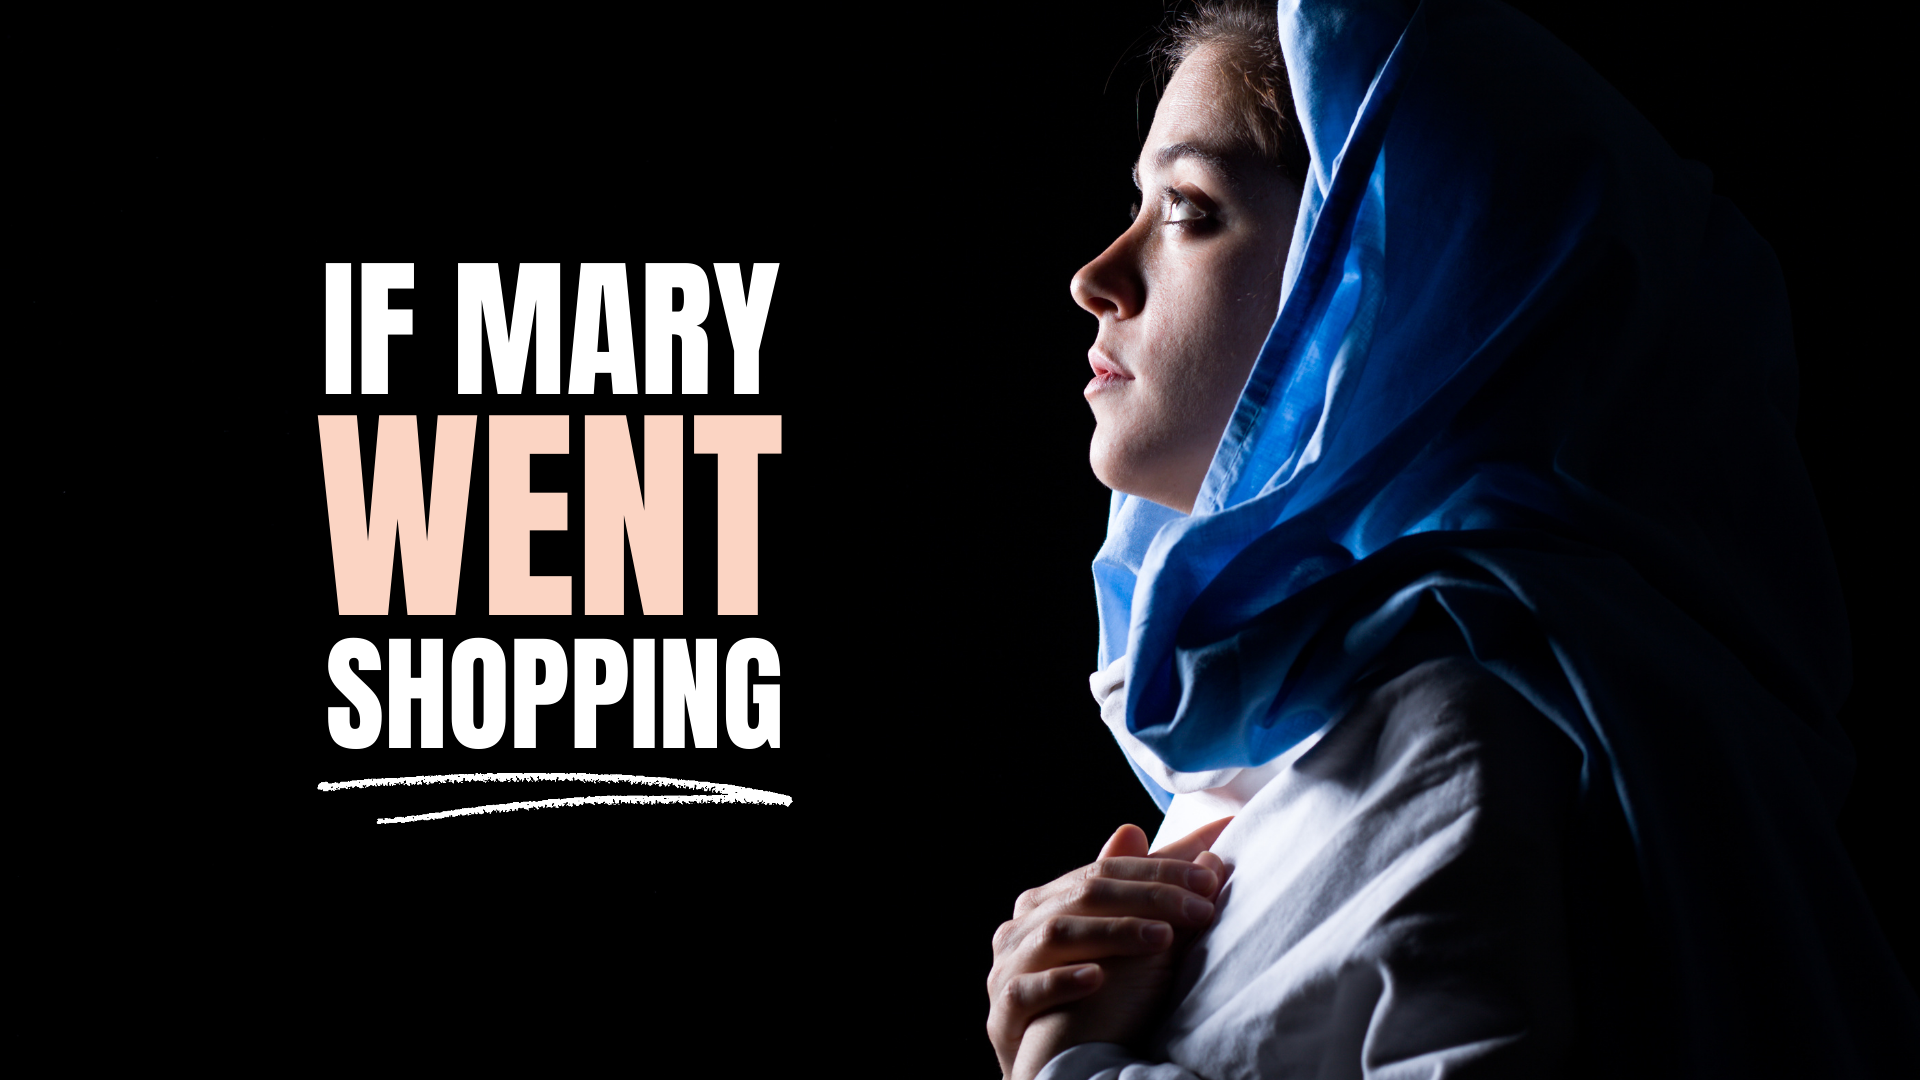 If Mary went shopping